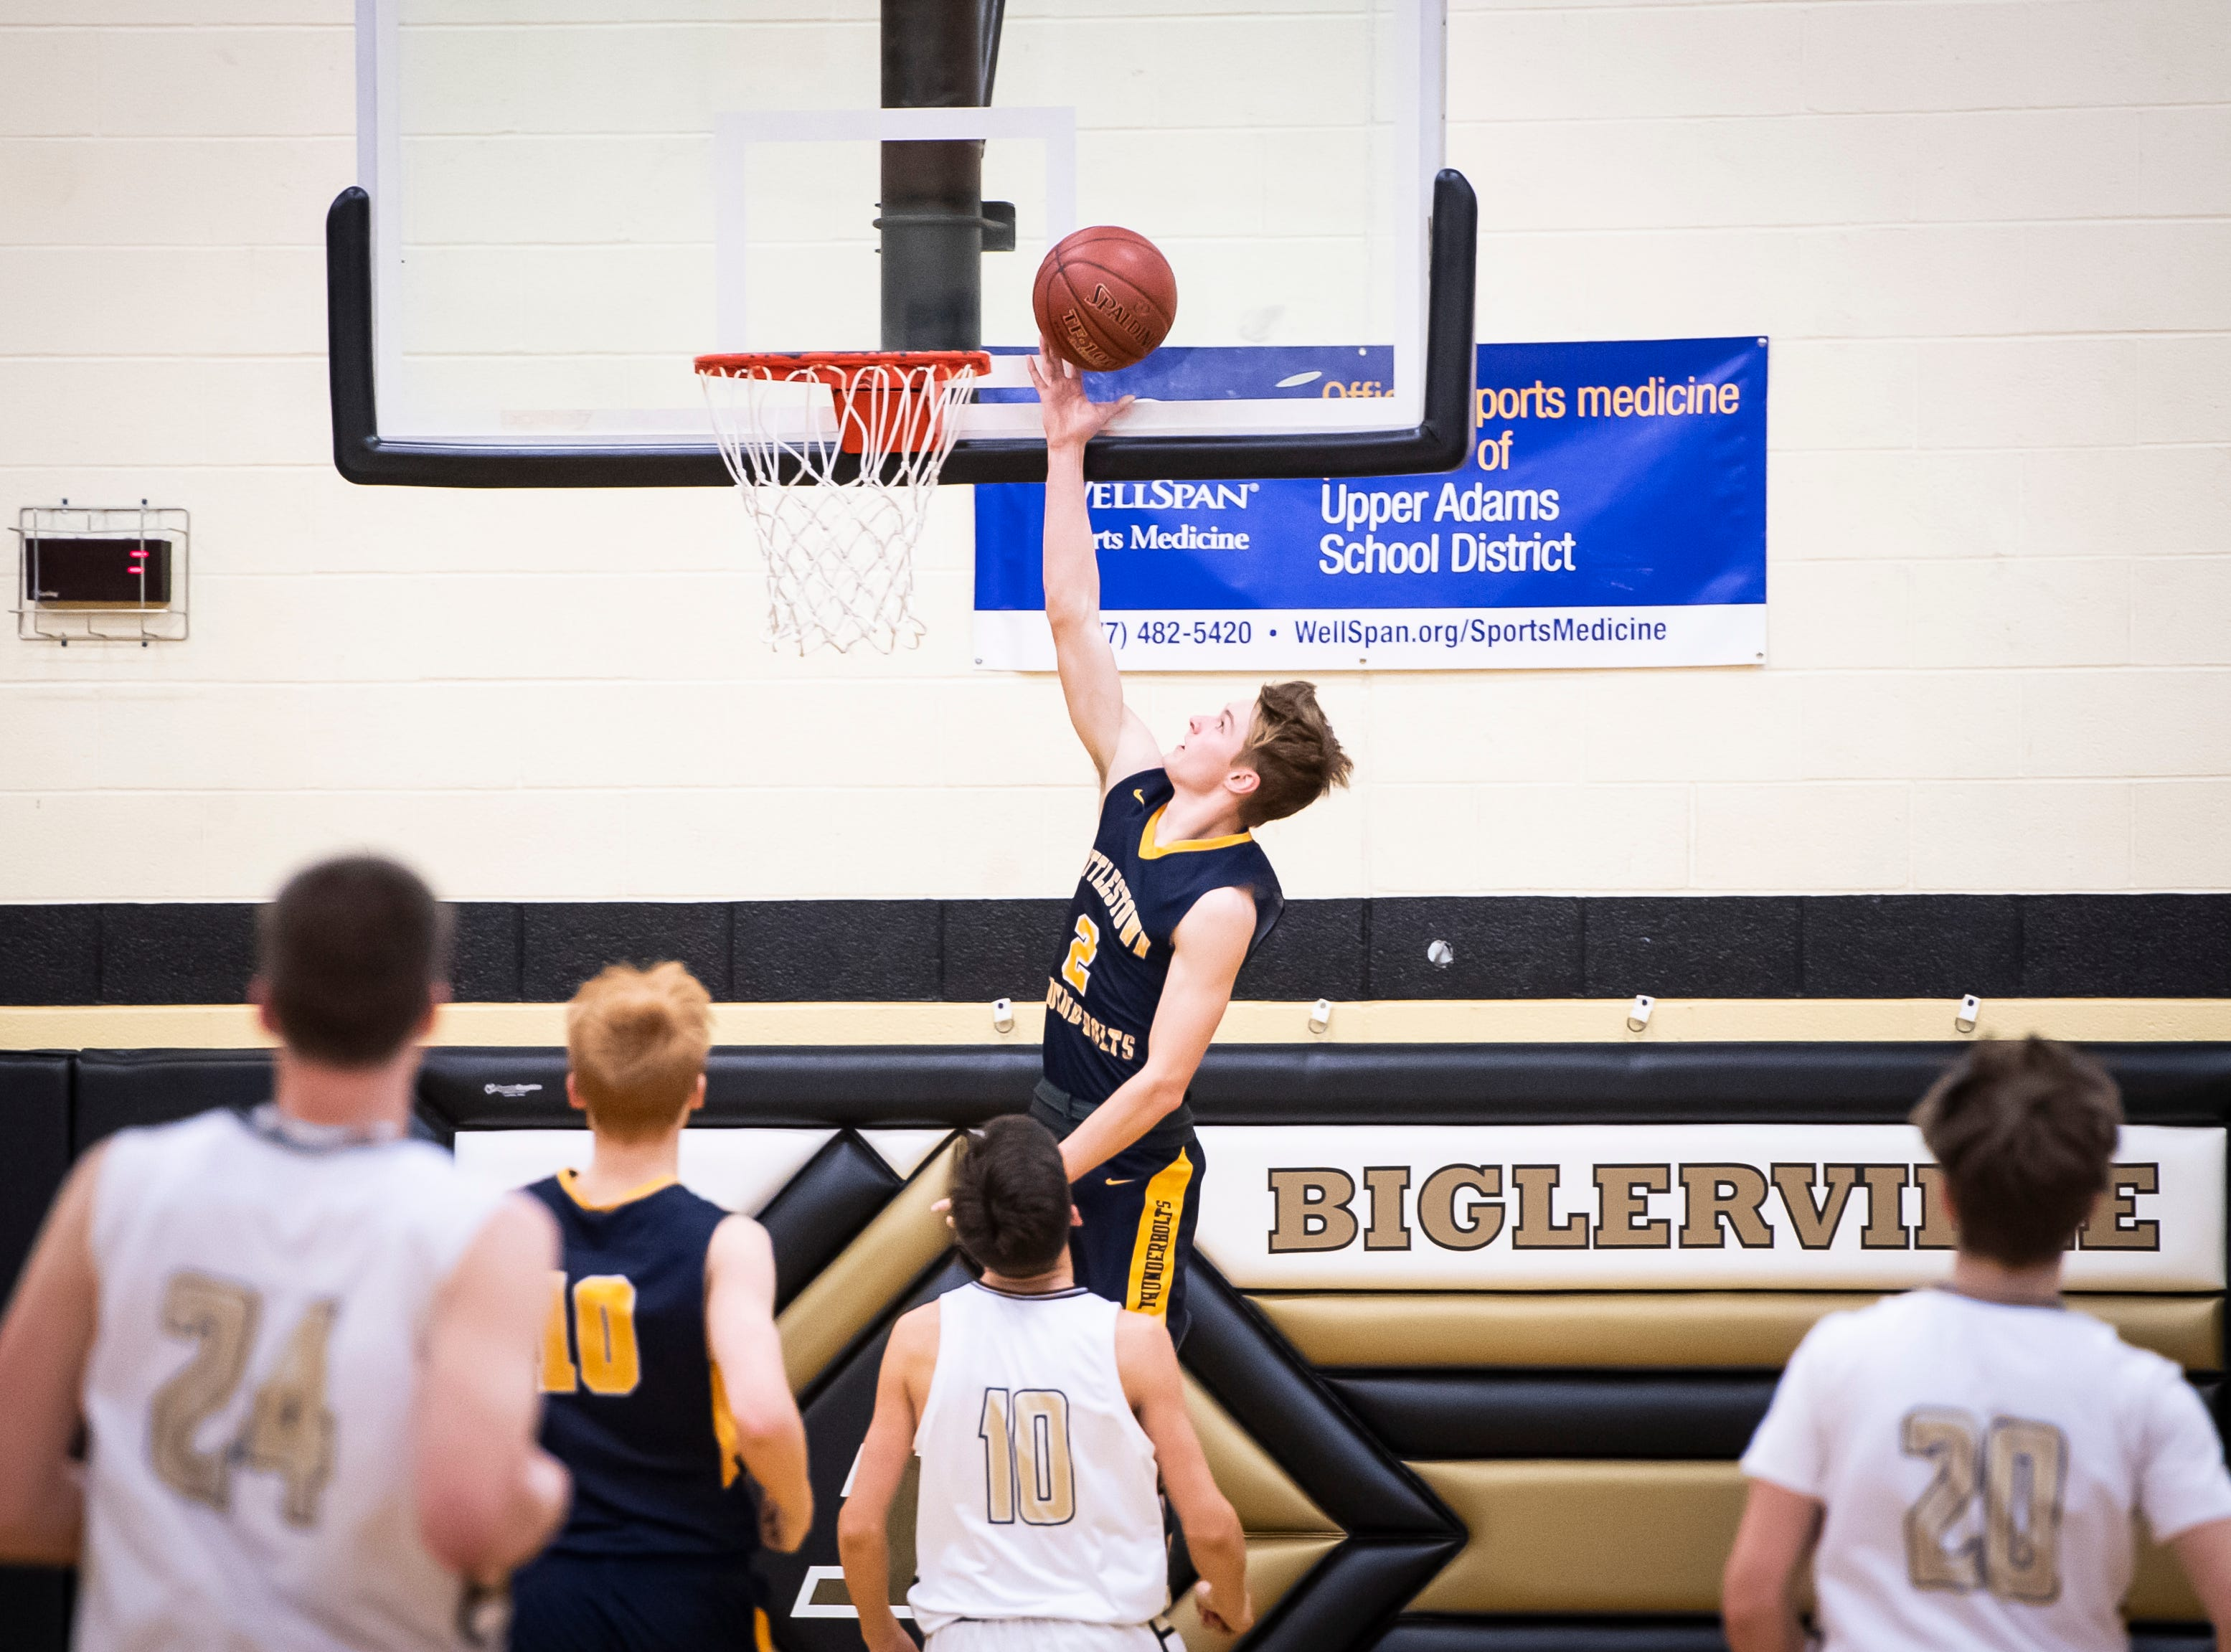 Littlestown's Jakob Lane scores on a layup after getting a steal against Biglerville on Friday, January 11, 2019. The Bolts won 65-38 to remain undefeated.